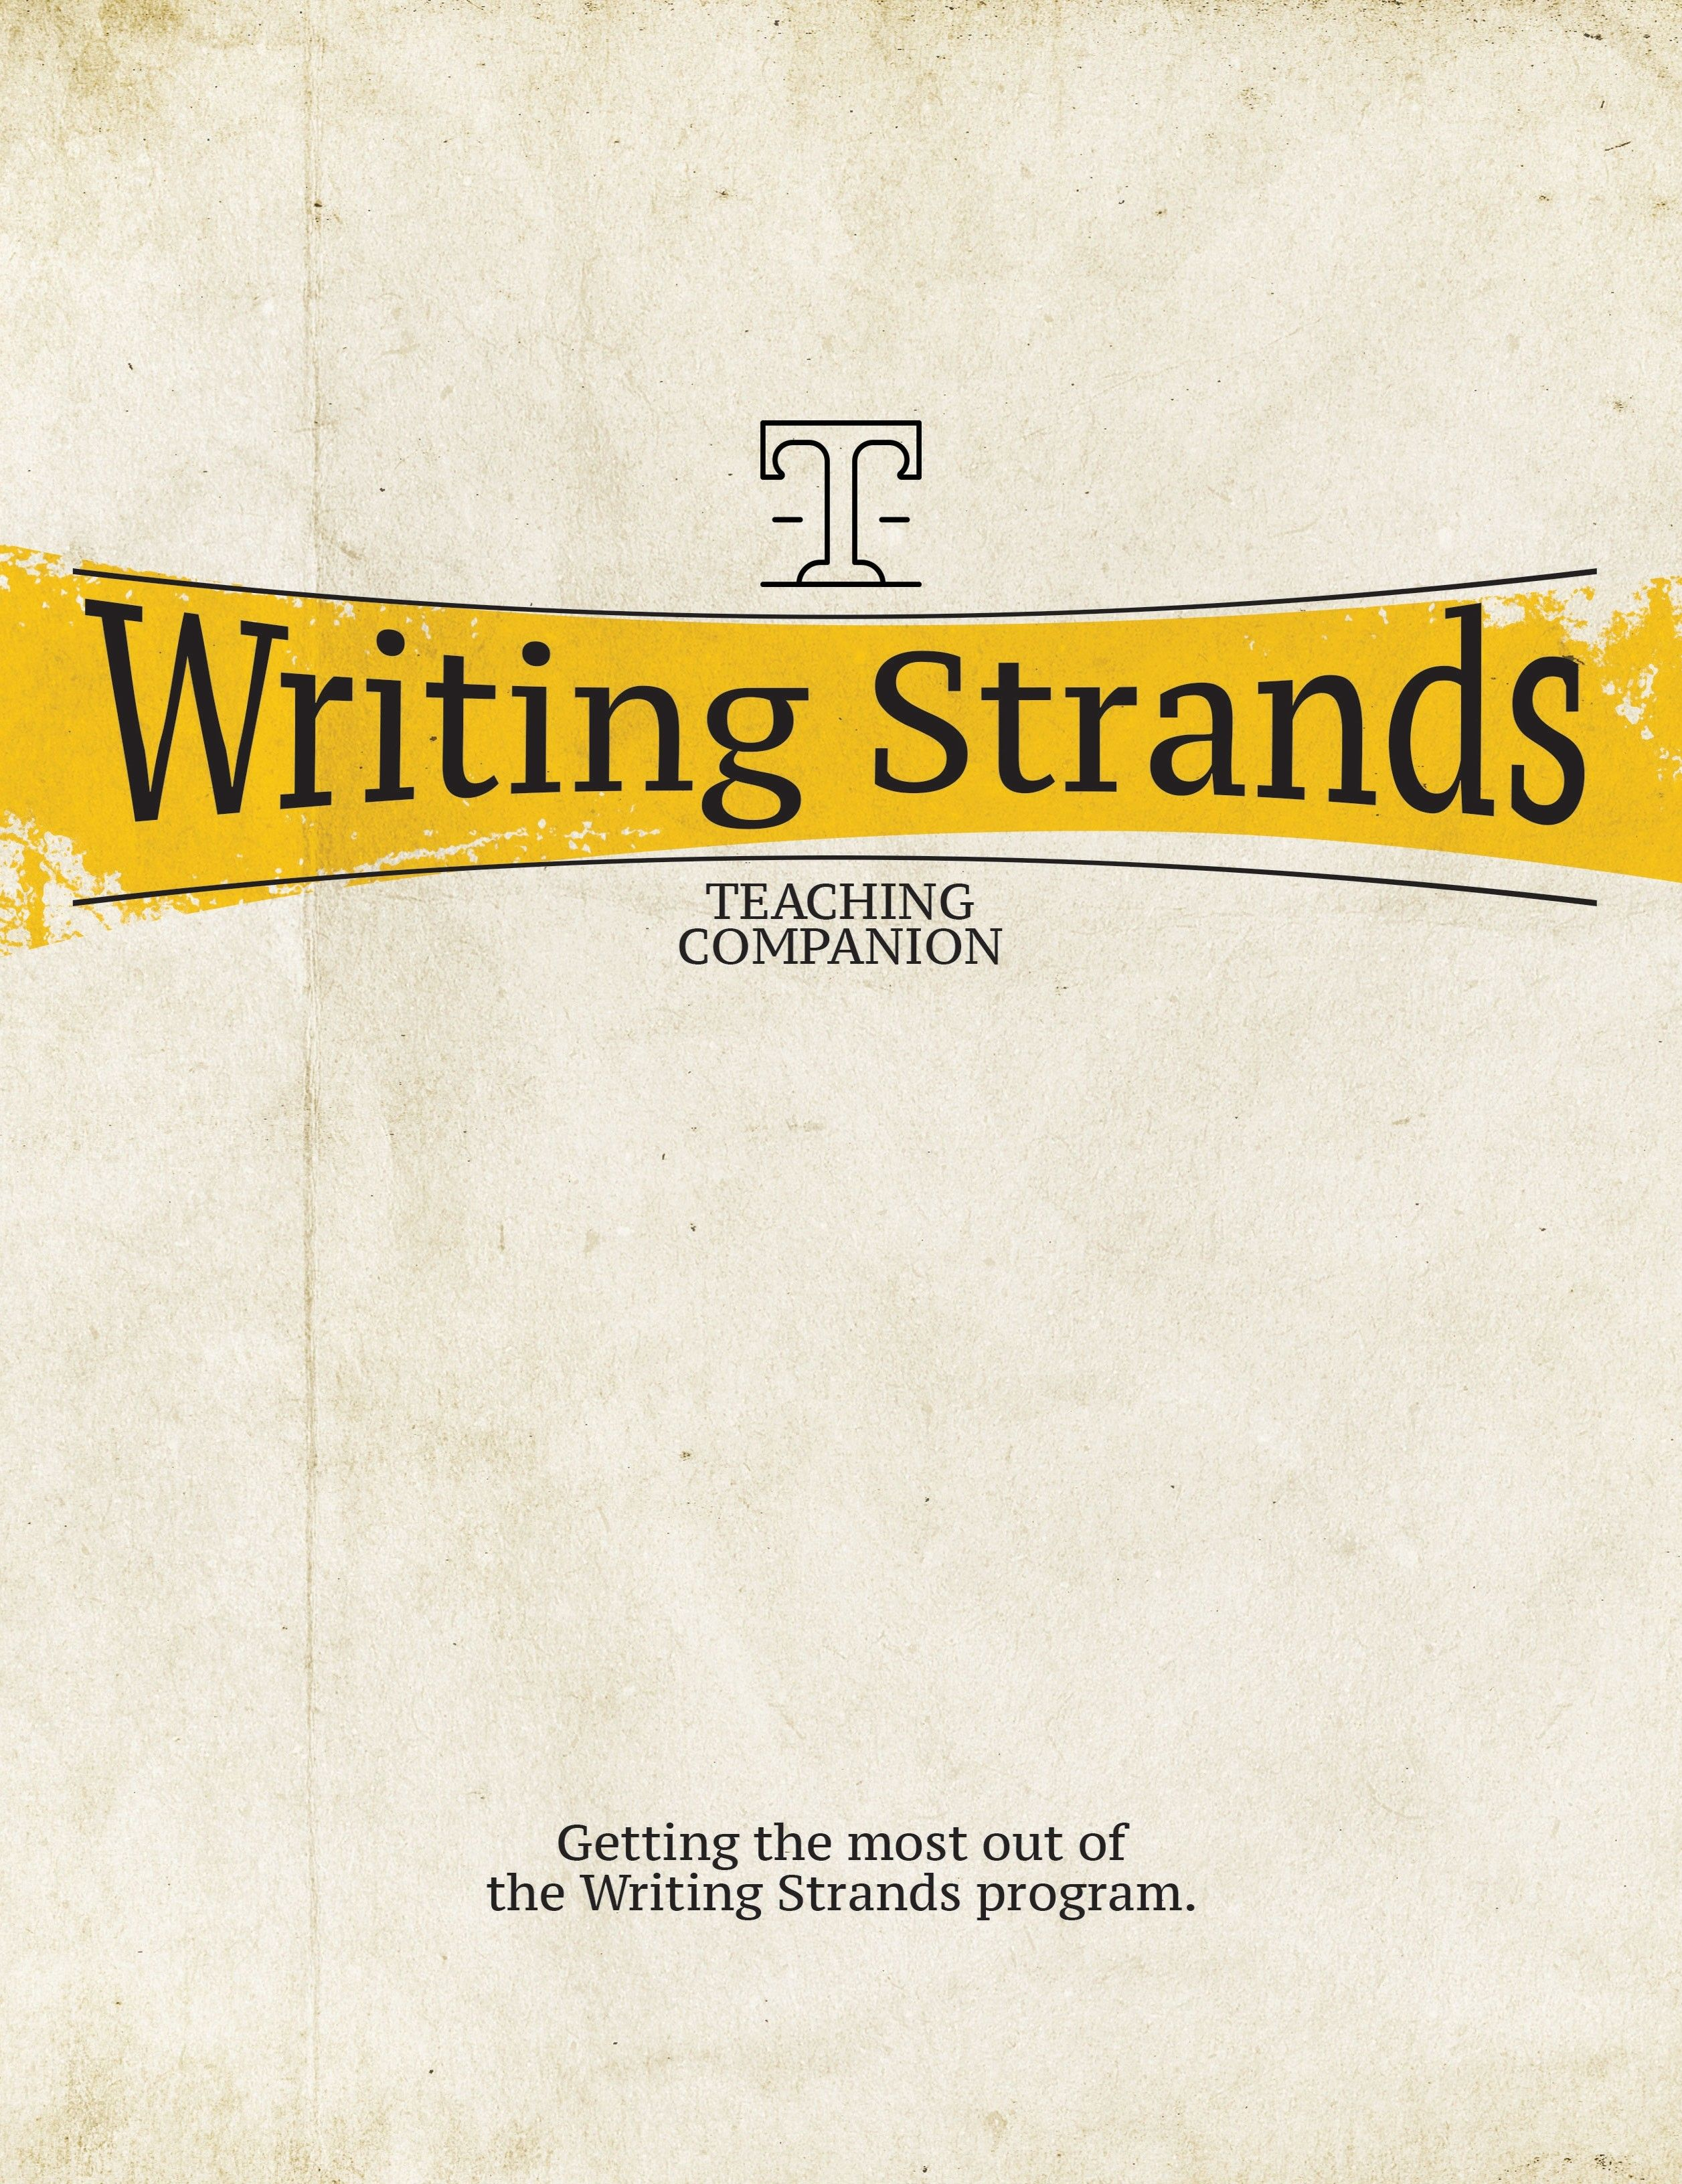 Writing Strands Teaching Companion With Images